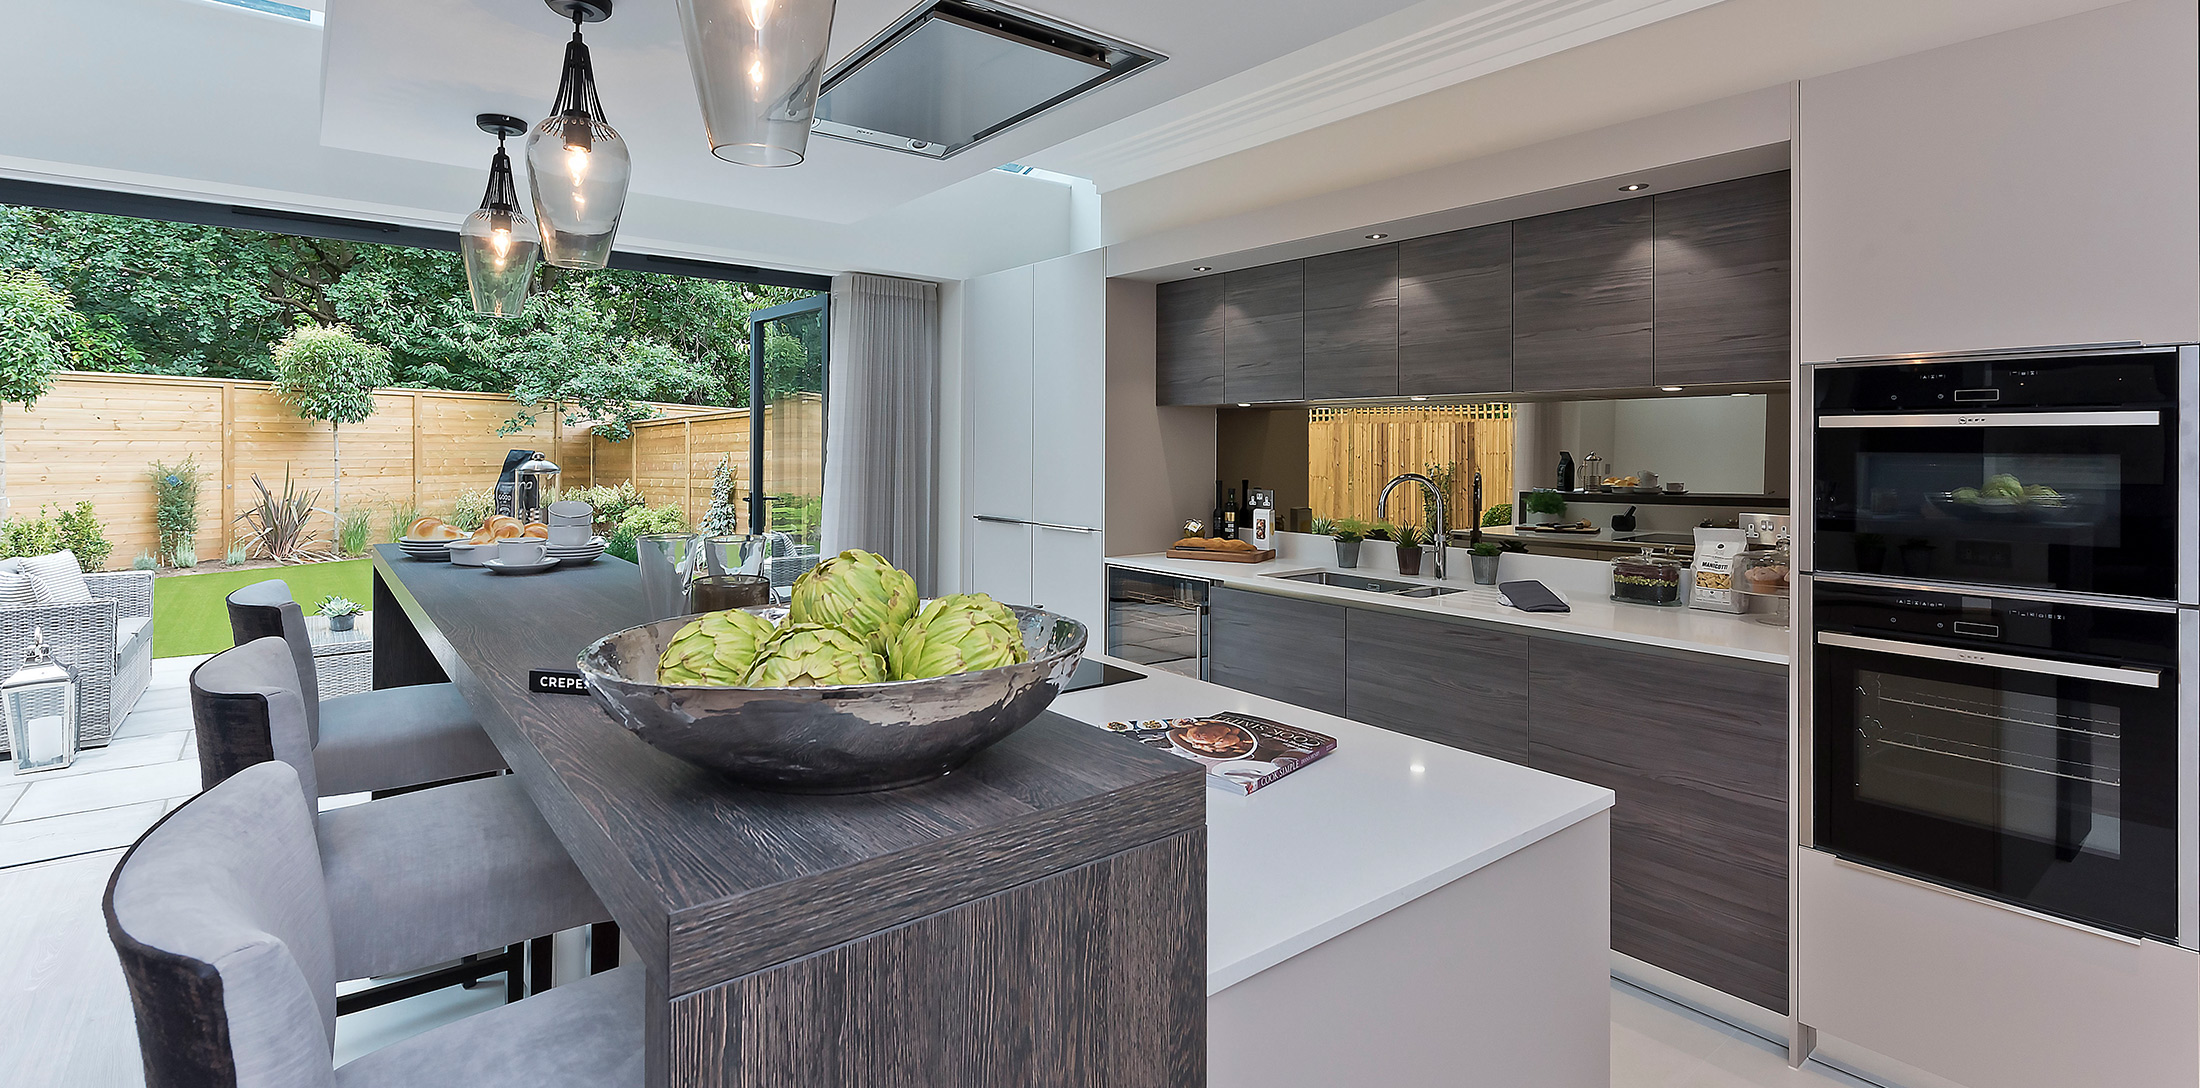 concept-development-property-home-henley-drive-kitchen-breakfast-bar-pendant-lights-bifold-doors